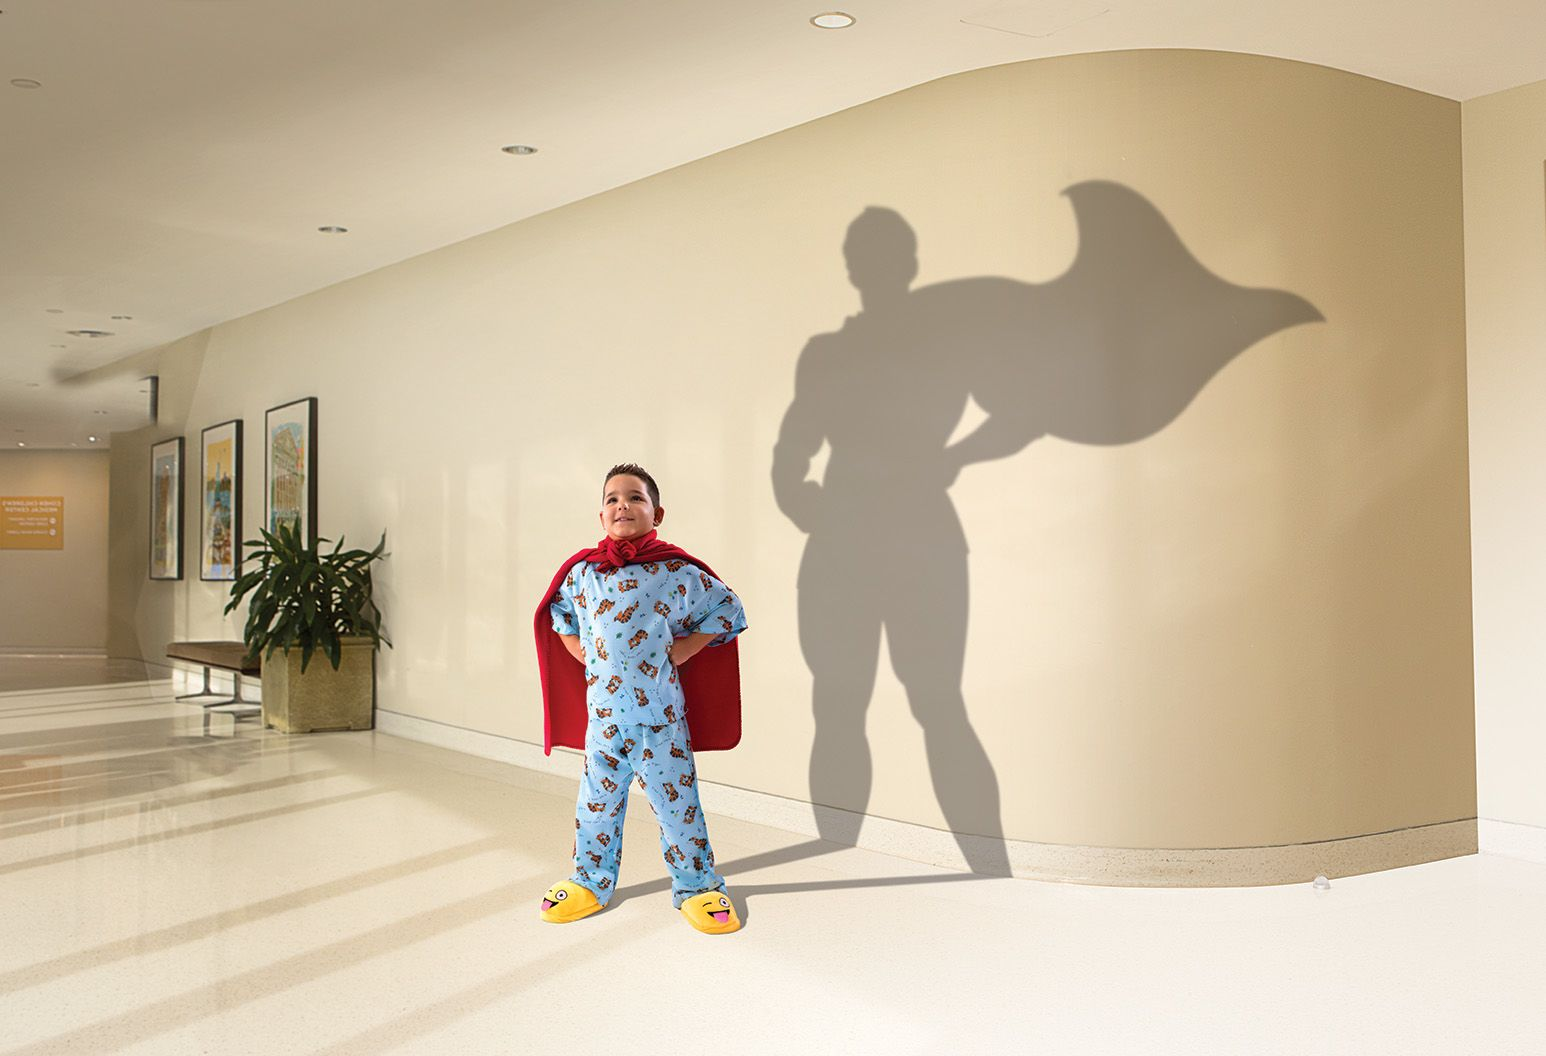 In a hospital room, a five year old by stands tall wearing blue pajamas and his yellow slippers. His shadow is cast on the wall behind him, and the shadow resembles a larger-than-life male super hero with his cape flowing in the wind.